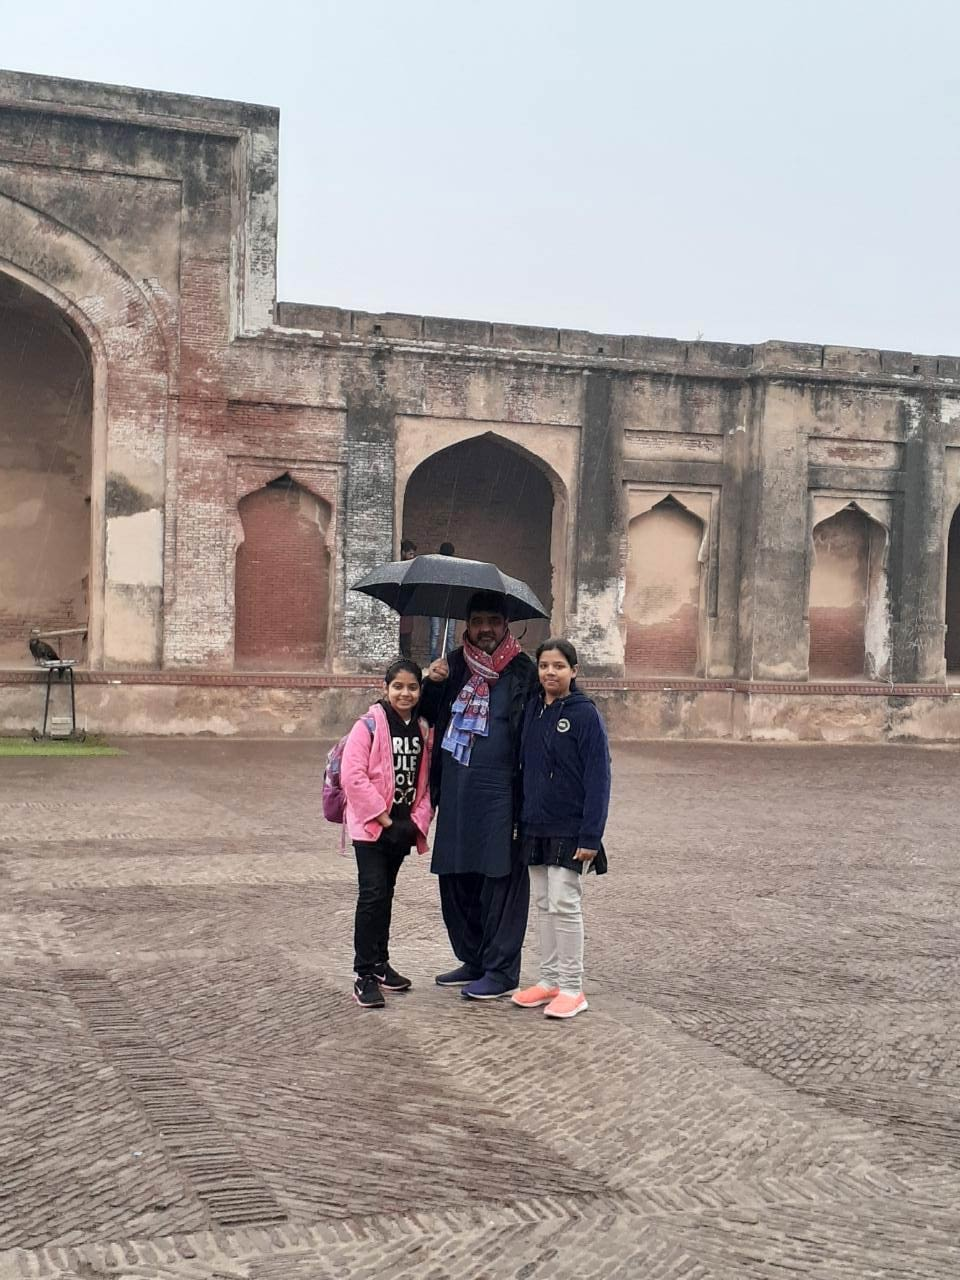 Zoya Imran is standing in front of Dr Allama Mohammad Iqbal Tomb